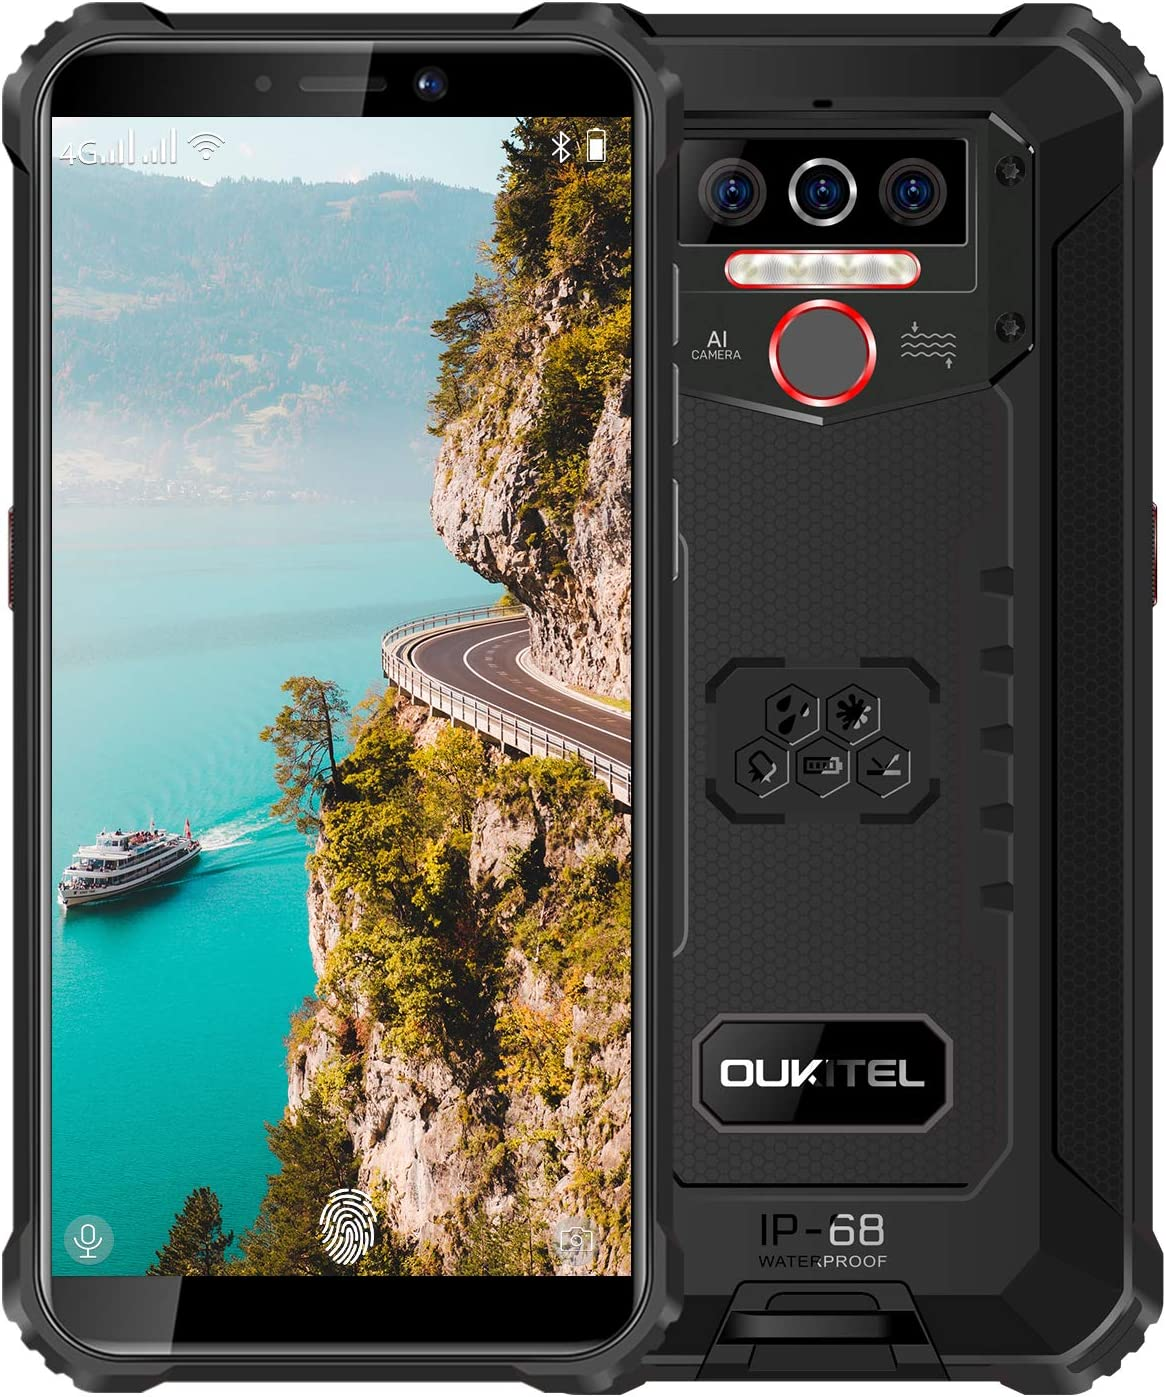 """Rugged Phone Unlocked OUKITEL WP5(2020) Android 10.0 Cell Phones 8000mAh Battery IP68 Waterproof Mobile Phone 4GB+32GB Dual SIM 5.5"""" HD+ Face ID Fingerprint Global 4G LTE GSM AT&T T-Mobile(Black)"""